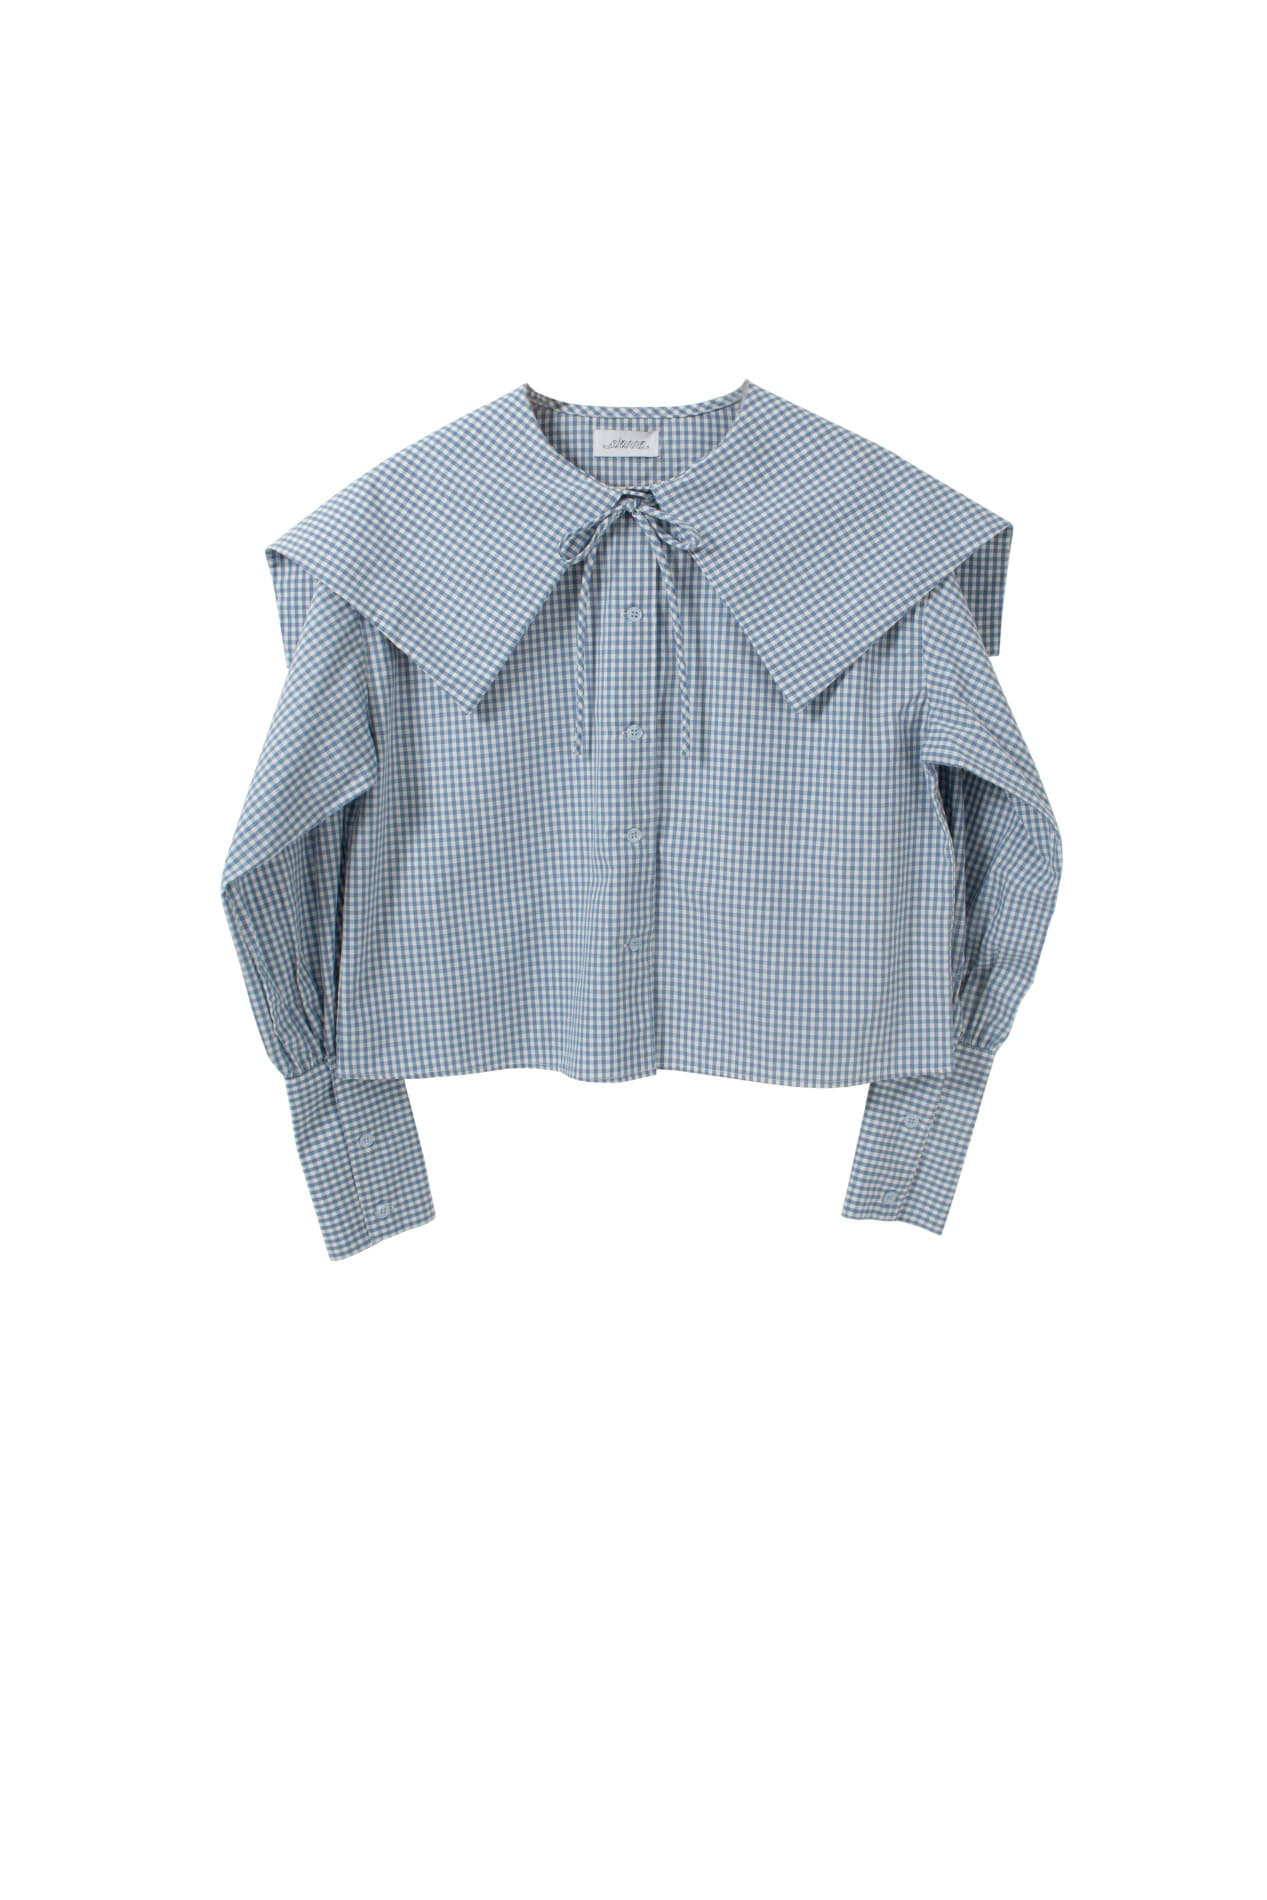 Bigleaf sailor blouse (sky blue)